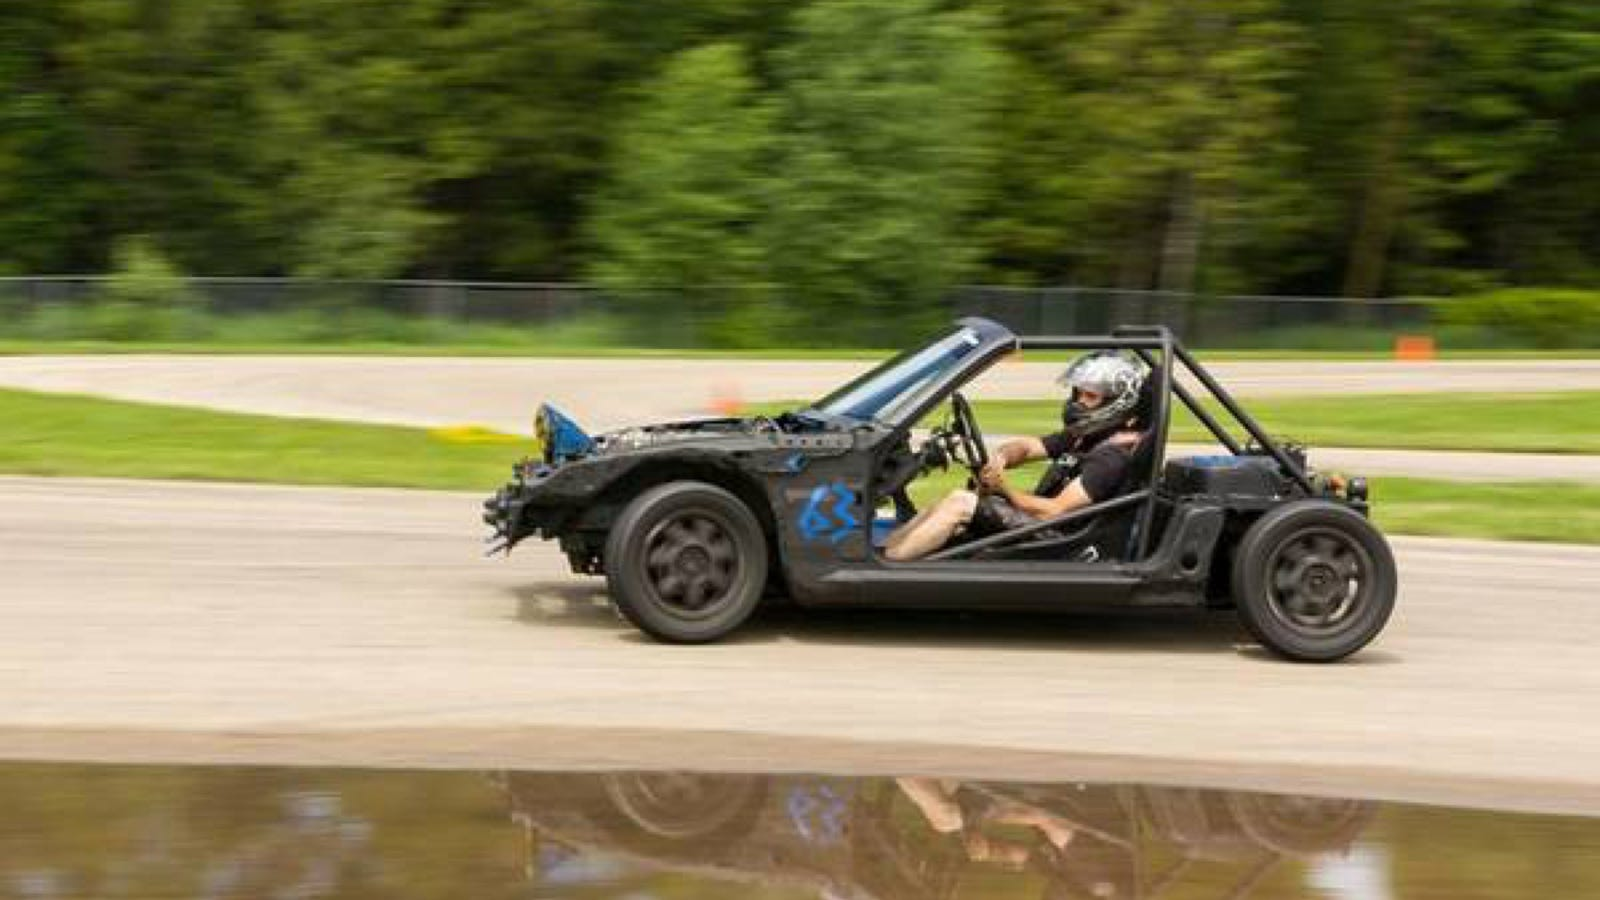 Track Day Genius Builds The Most Hilarious Miata ...